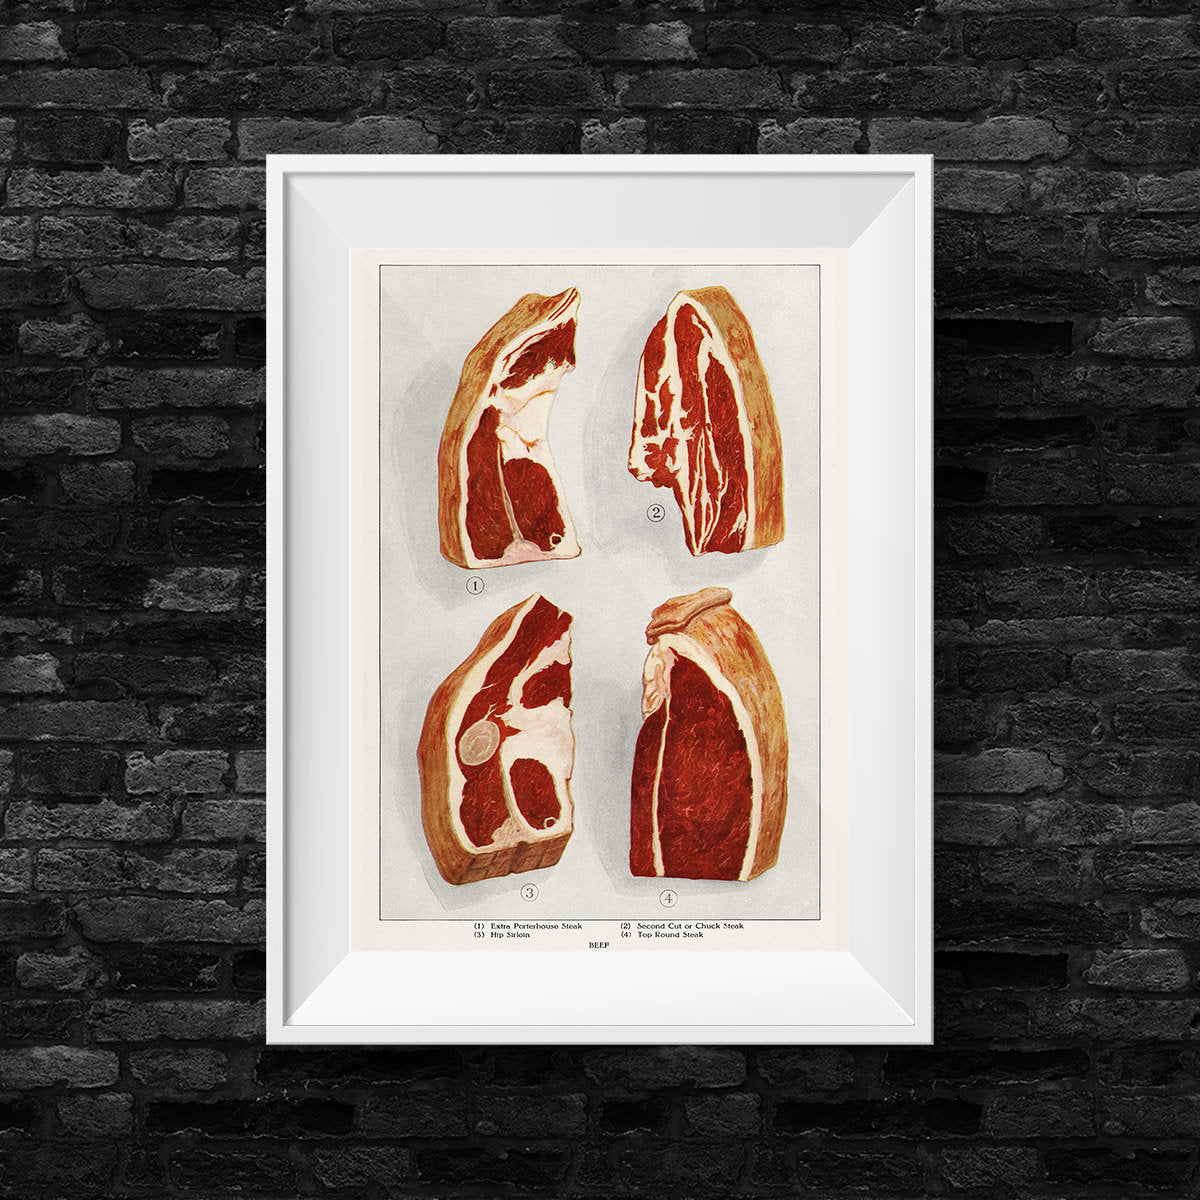 Beef 4 Pieces Vintage Druck, Vintage Print, Poster, Antique Illustration, Food, Barbecue - Kuriosis Vintage Prints